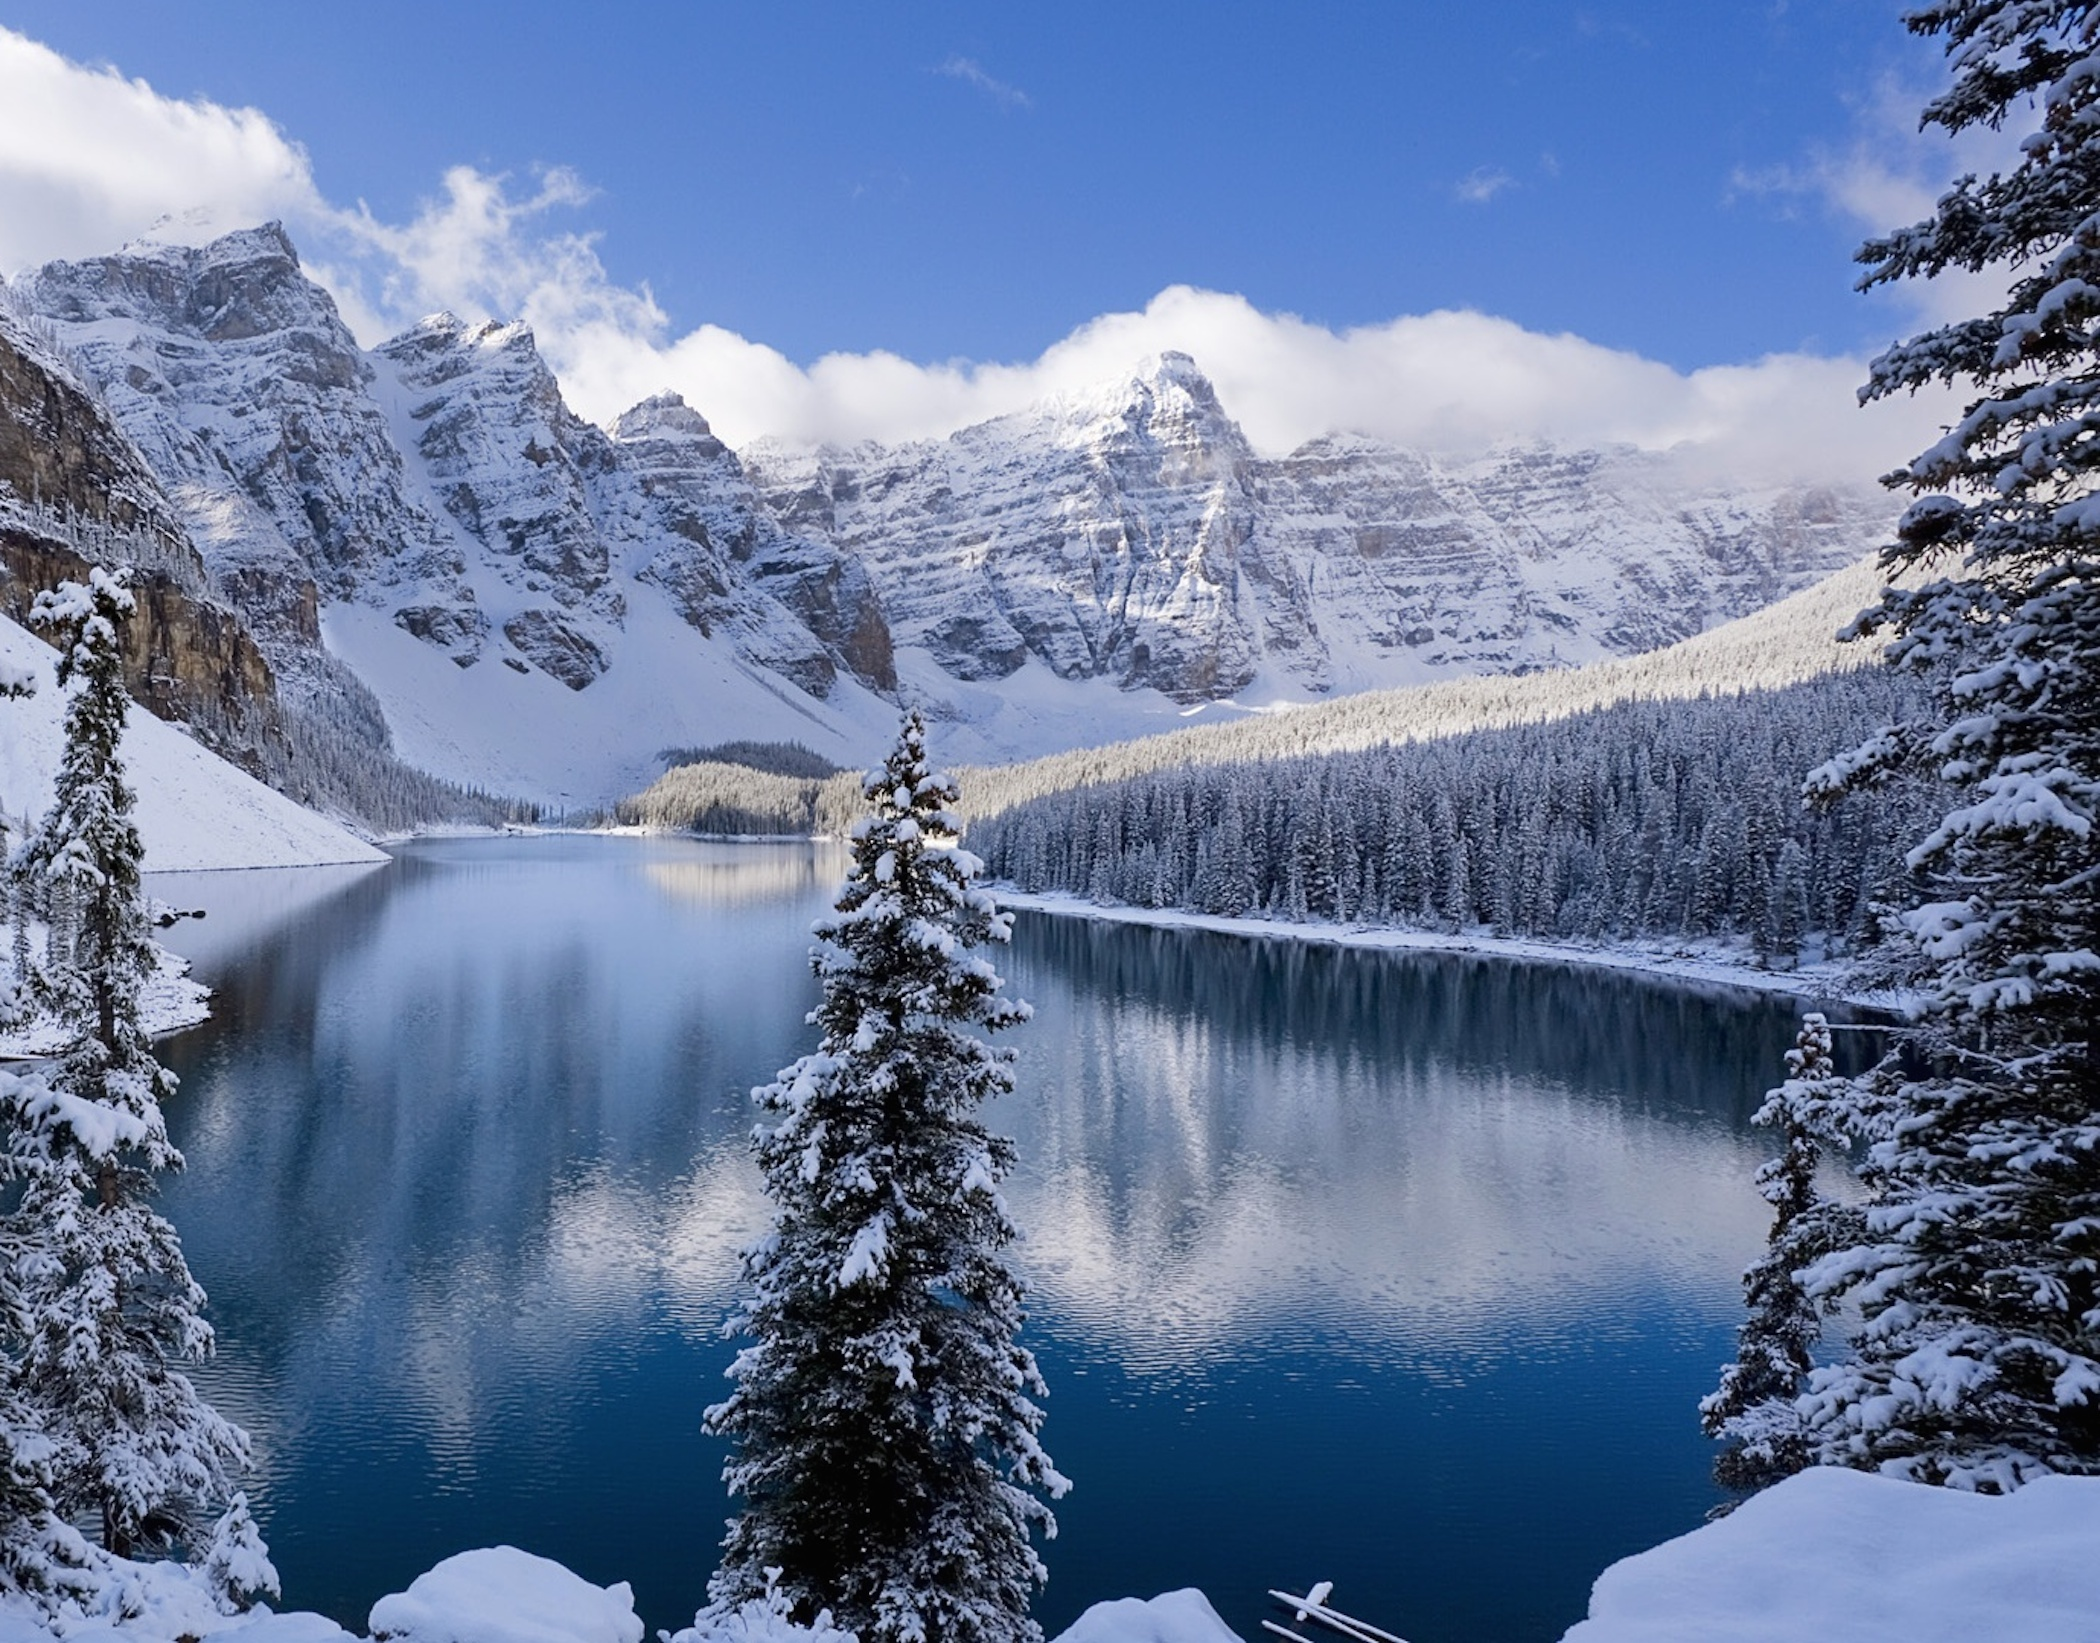 Snow Covered Mountains Wallpaper   Downloads 2100x1643